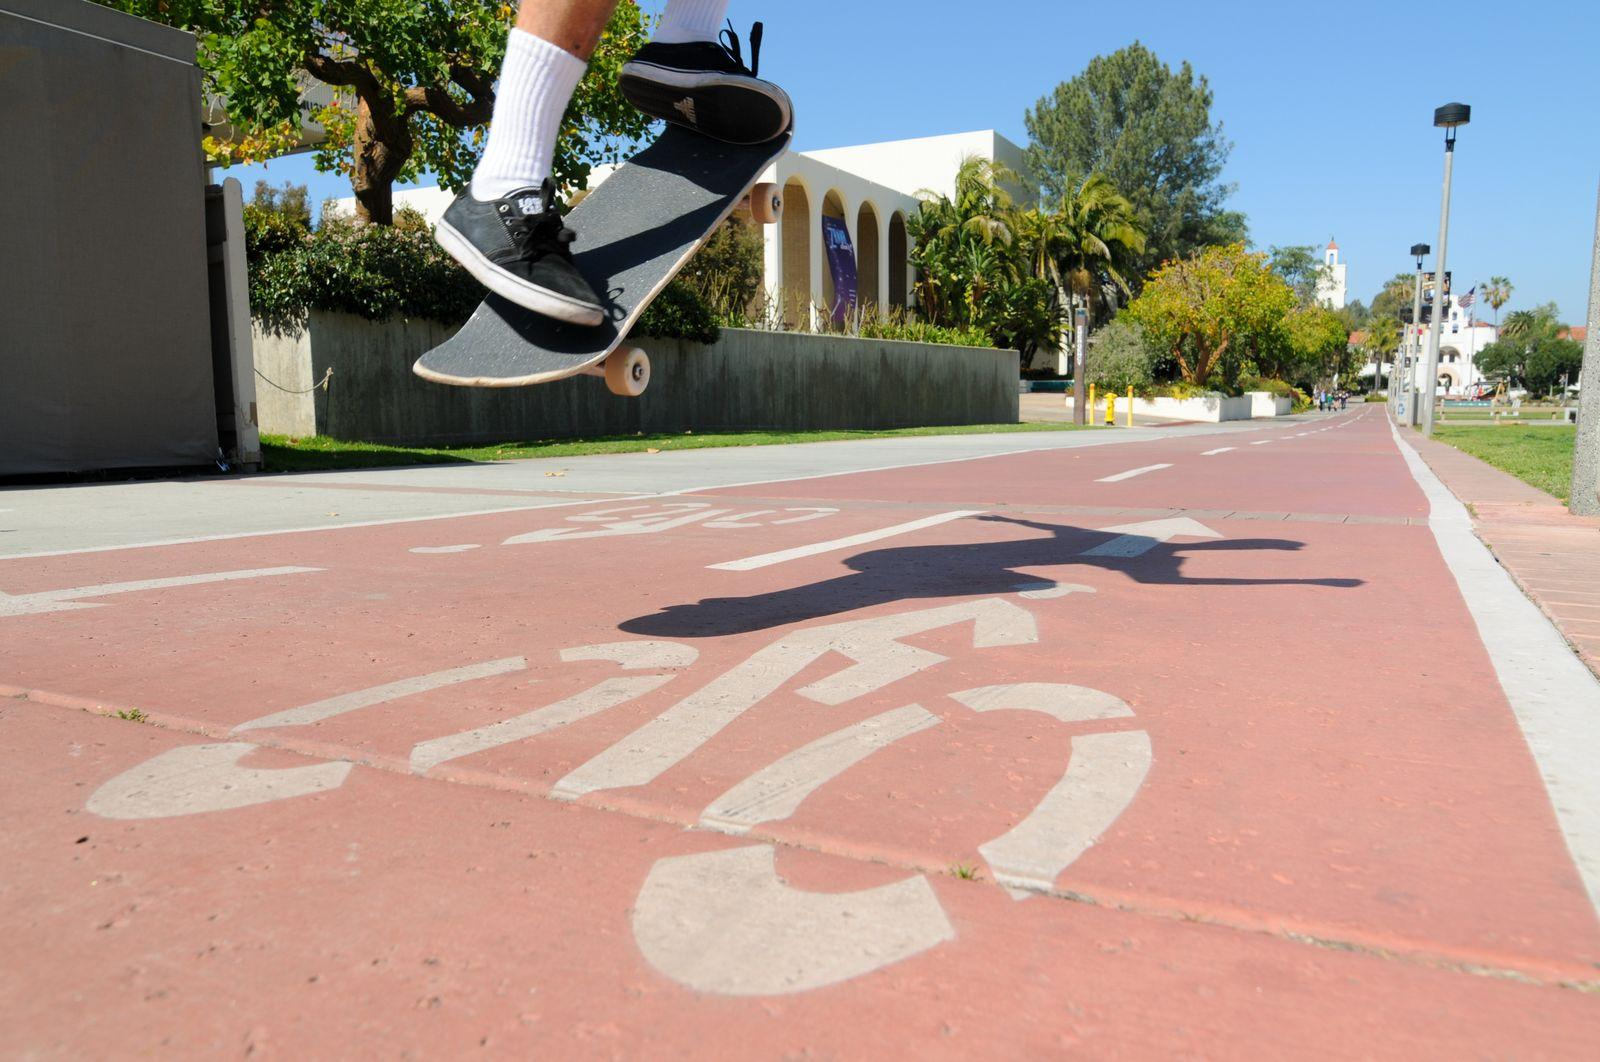 SDSU police to allow skateboards in campus bike lanes